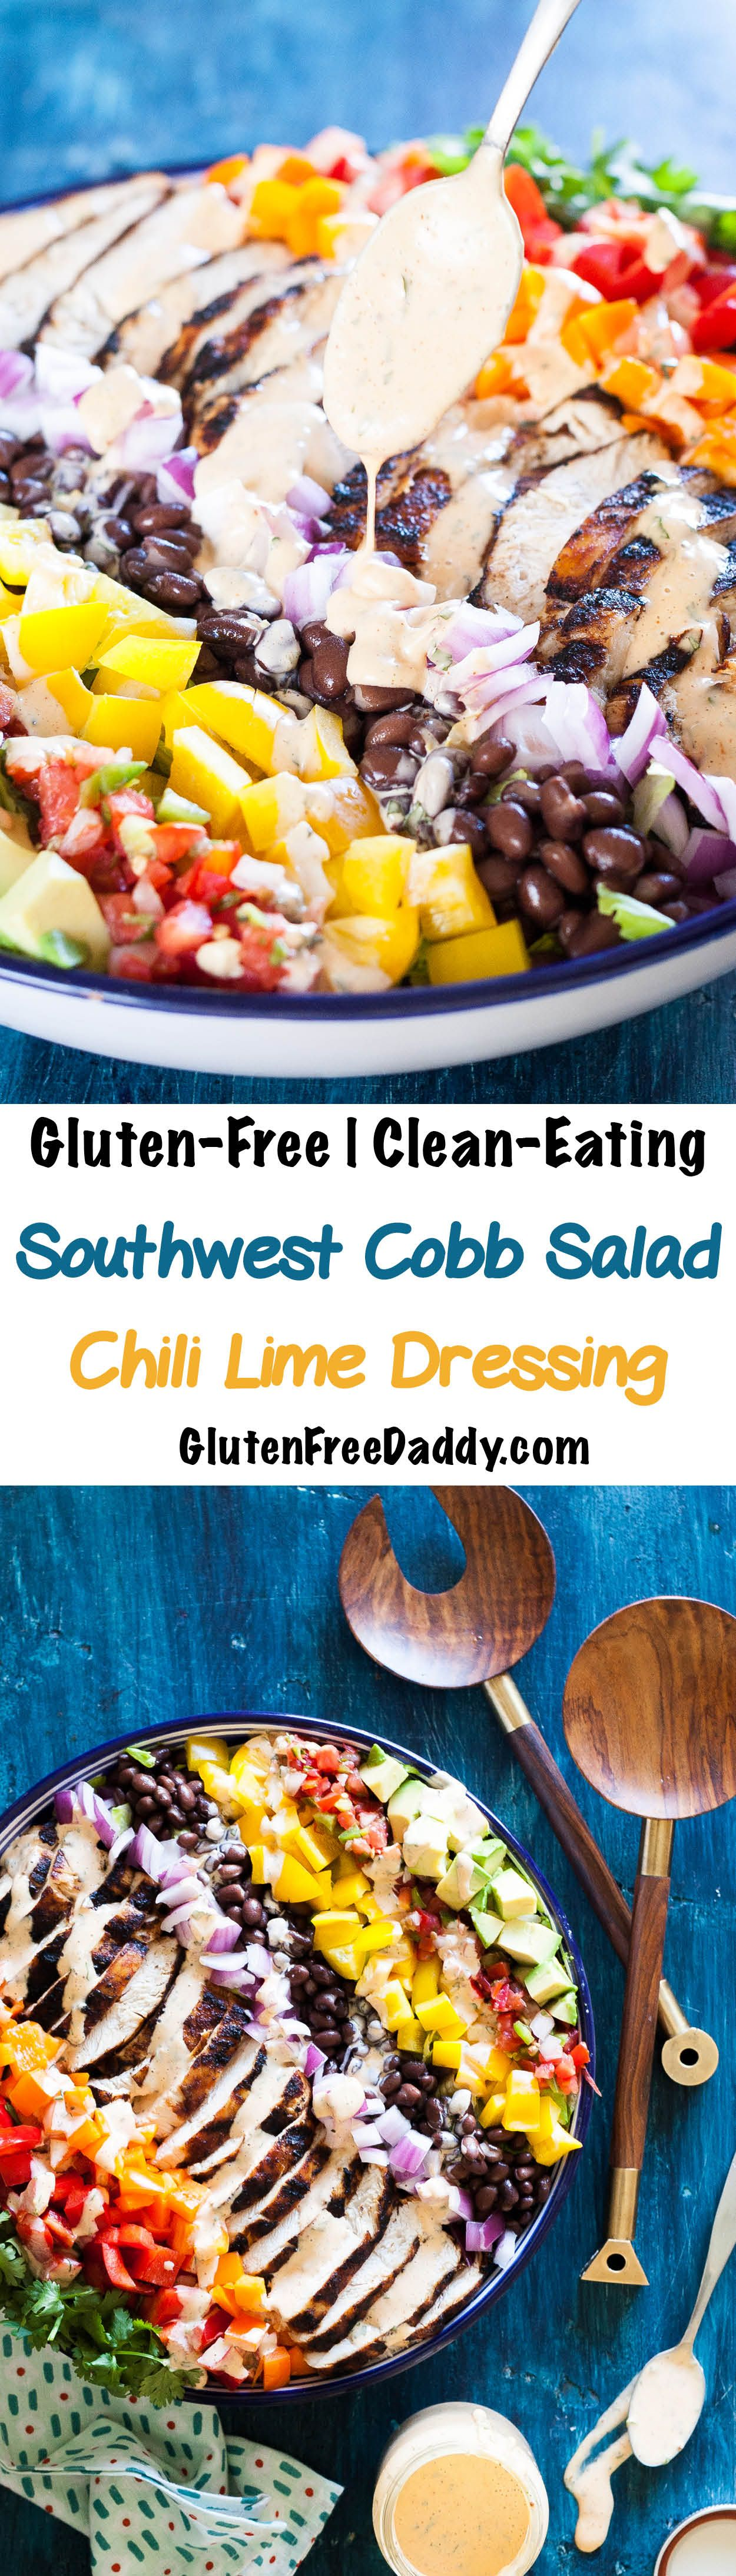 Grilled chicken southwest chili lime salad recipe my